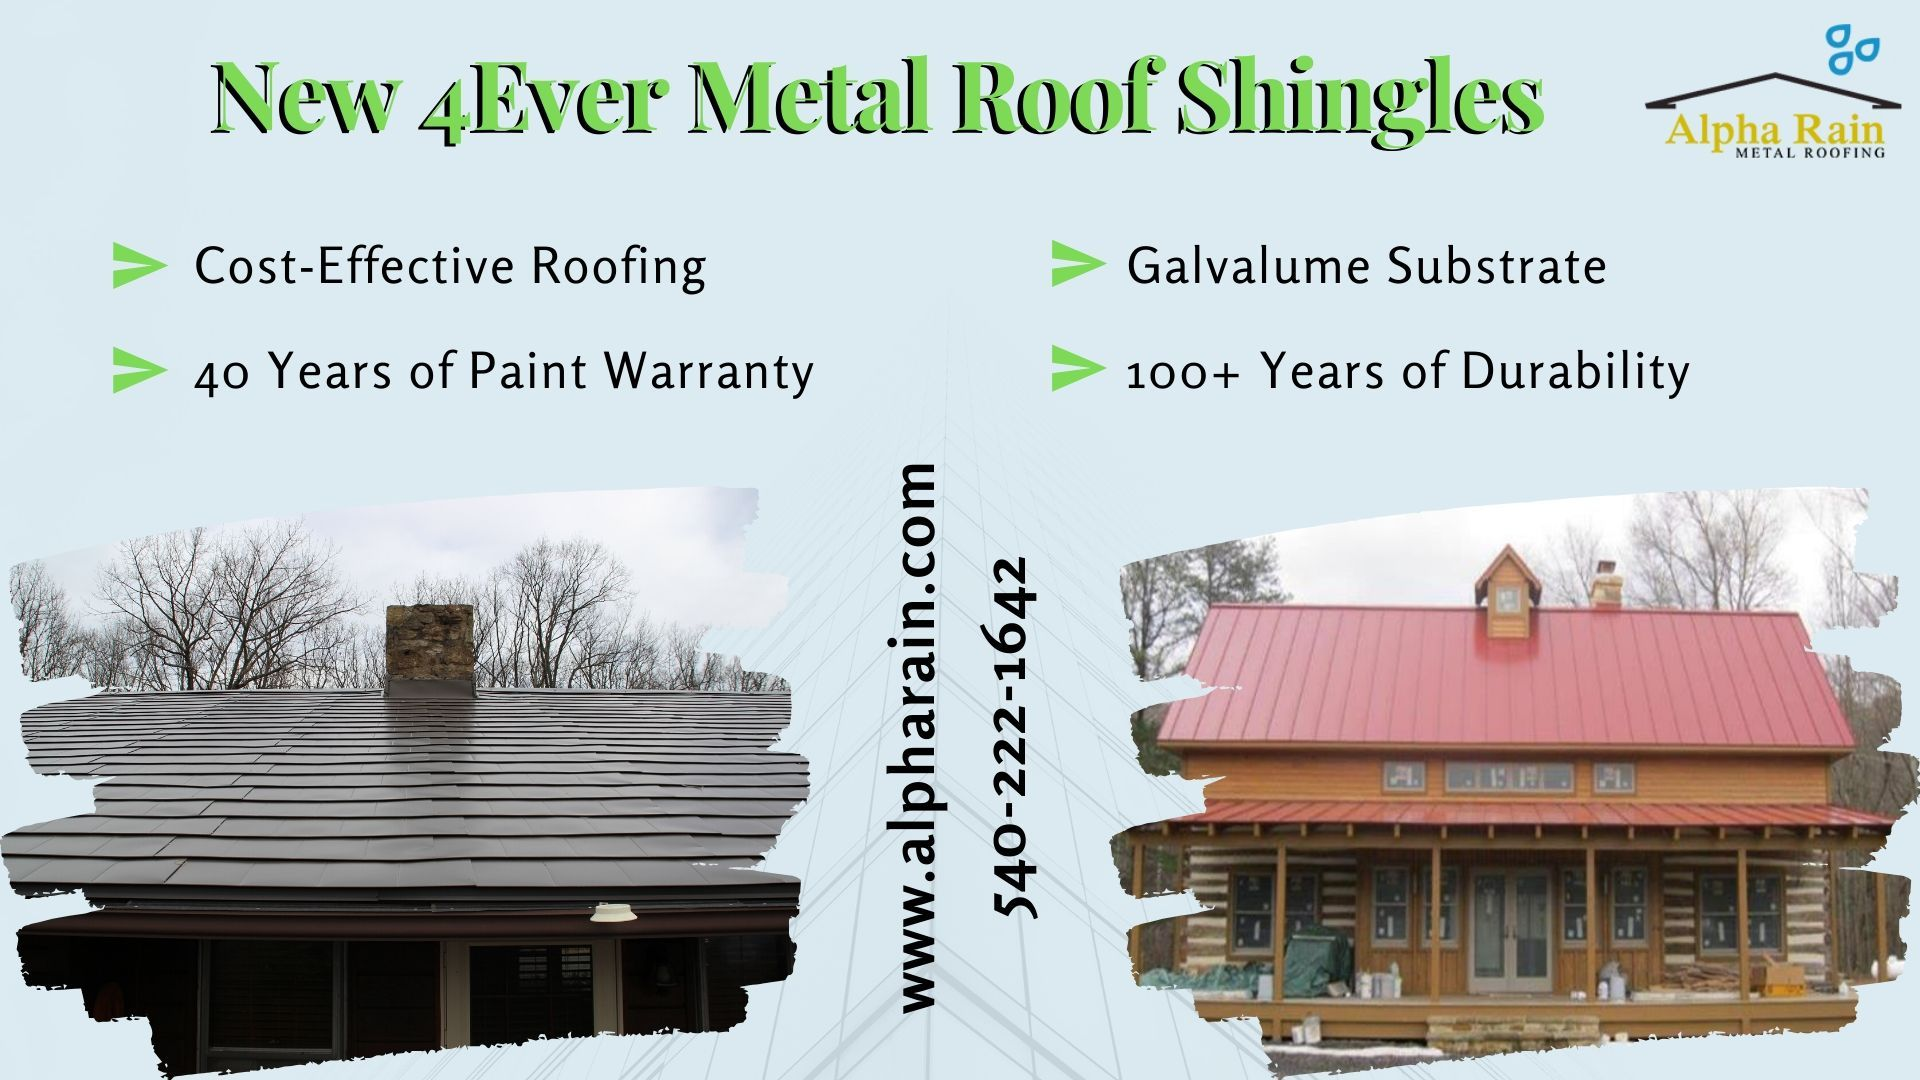 Cost Effective Metal Shingles For Residential Roofing In 2020 Metal Shingle Roof Roof Shingles Metal Roof